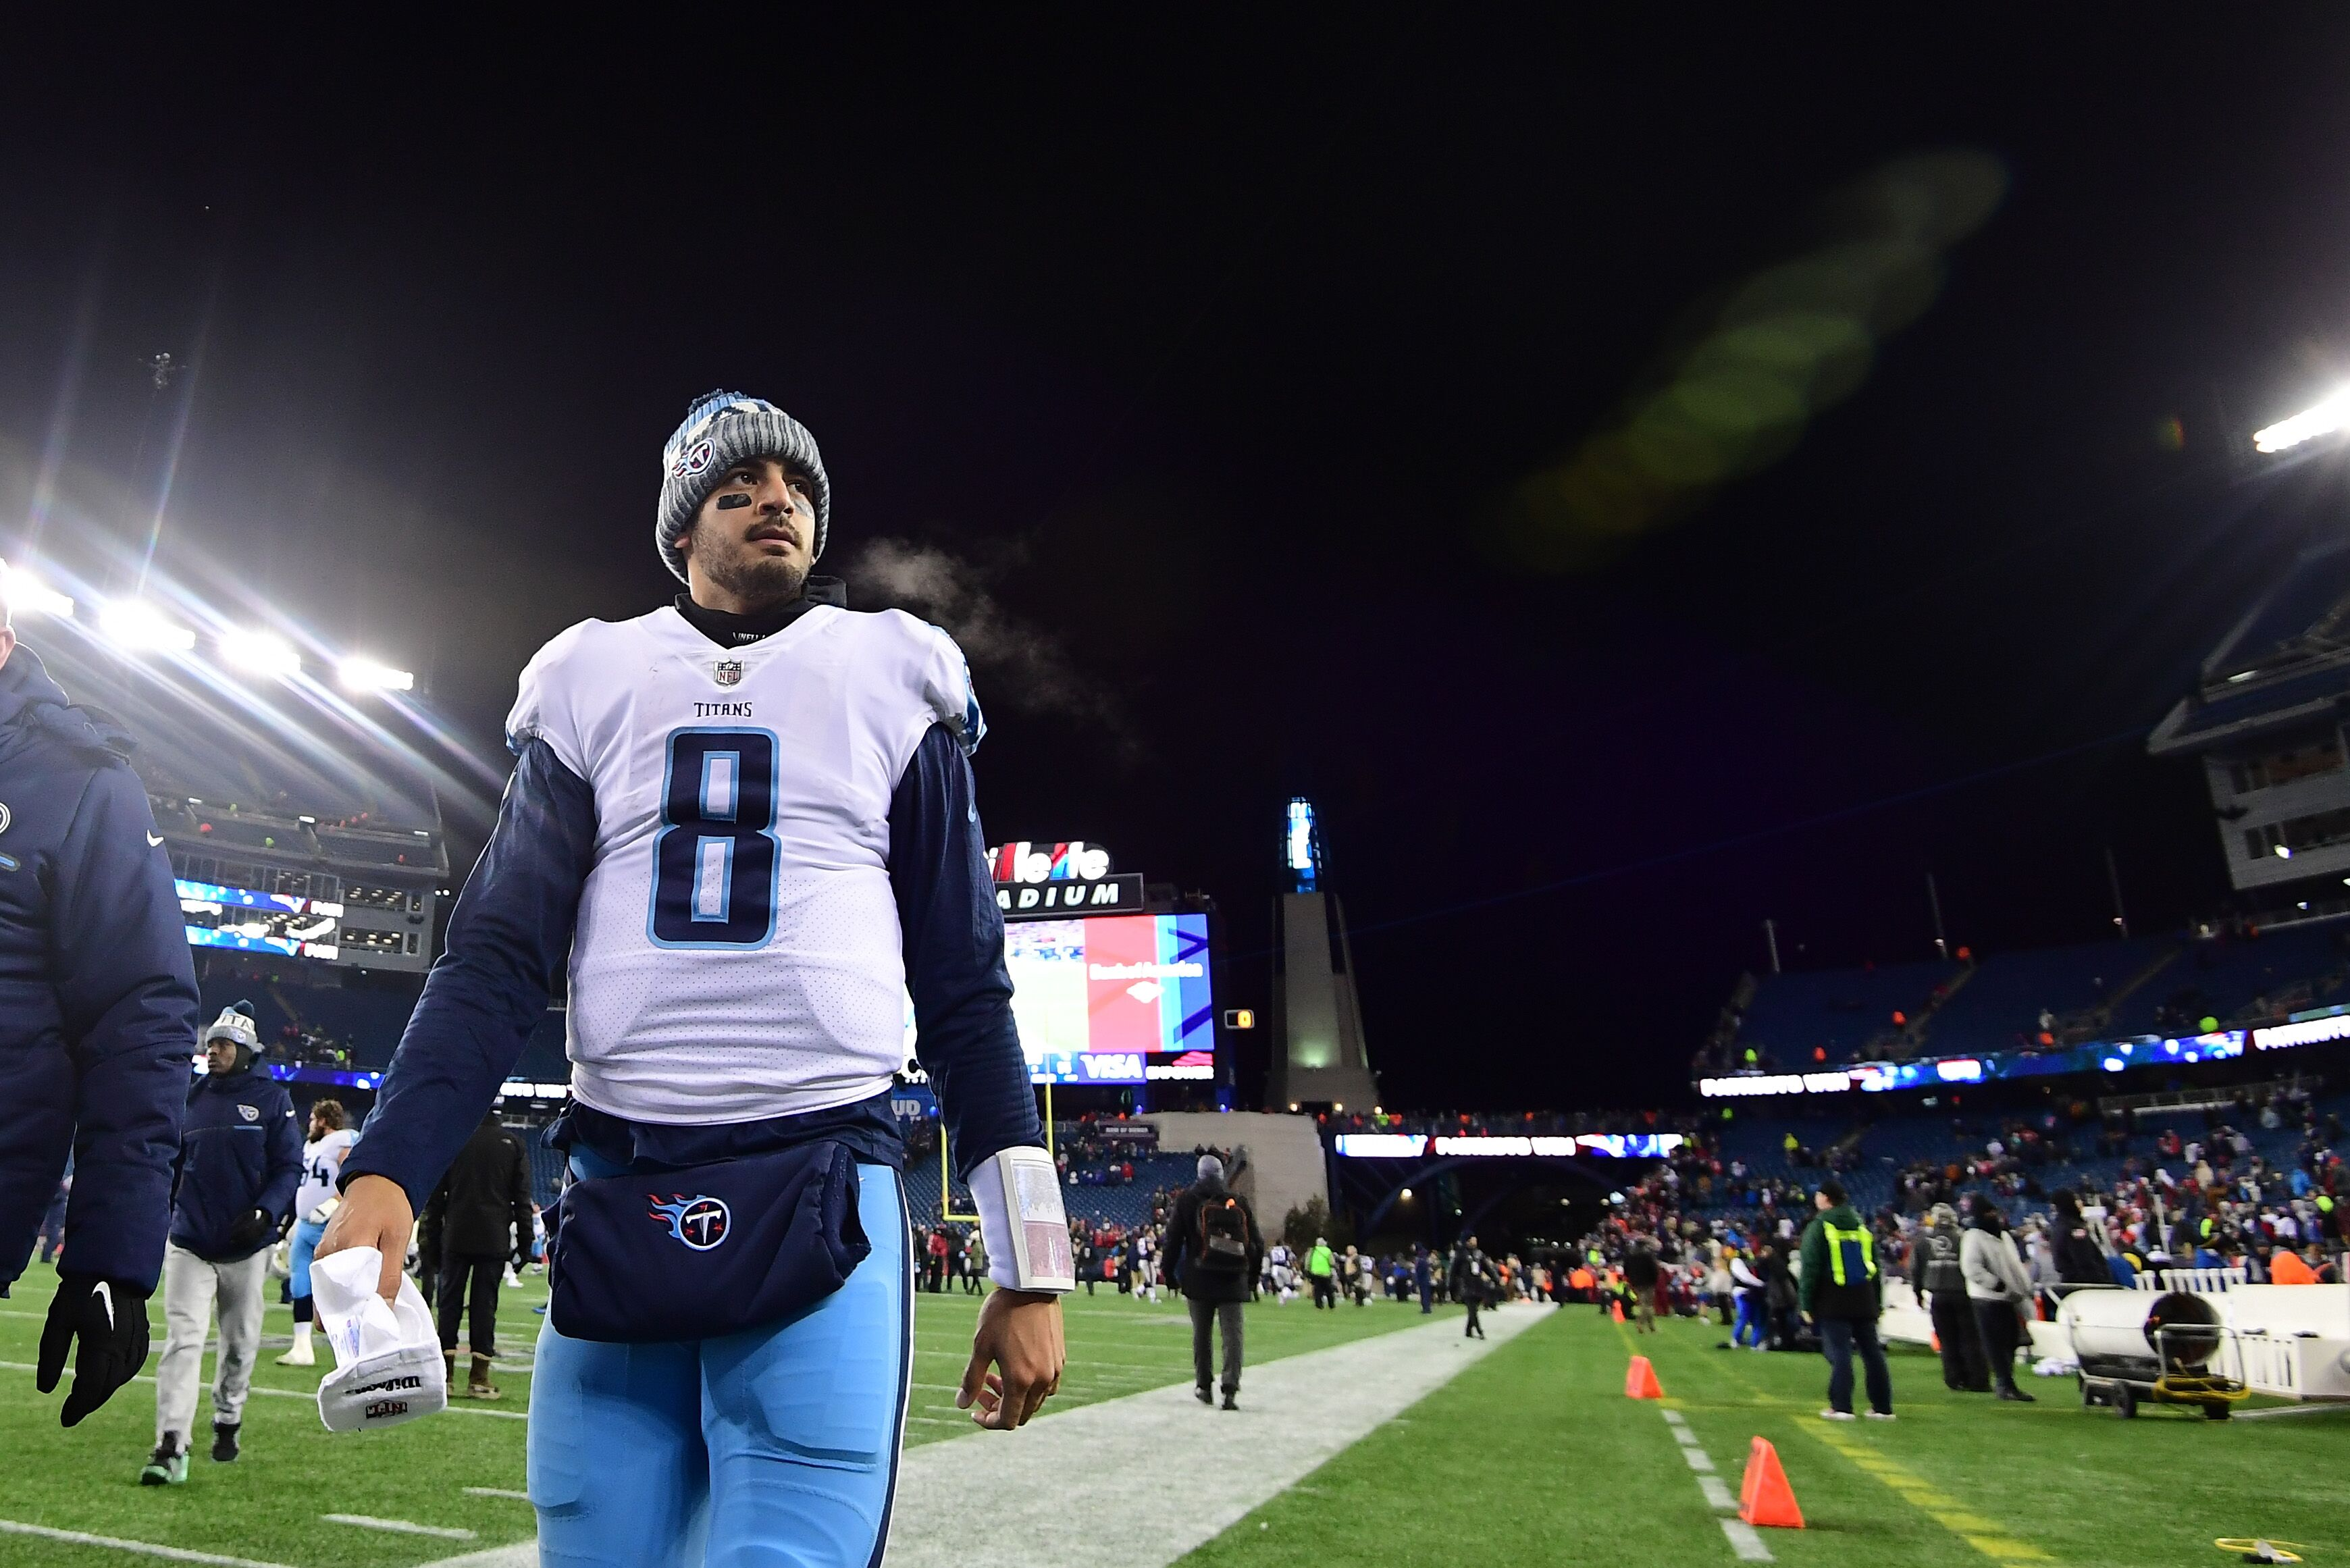 904660422-divisional-round-tennessee-titans-v-new-england-patriots.jpg